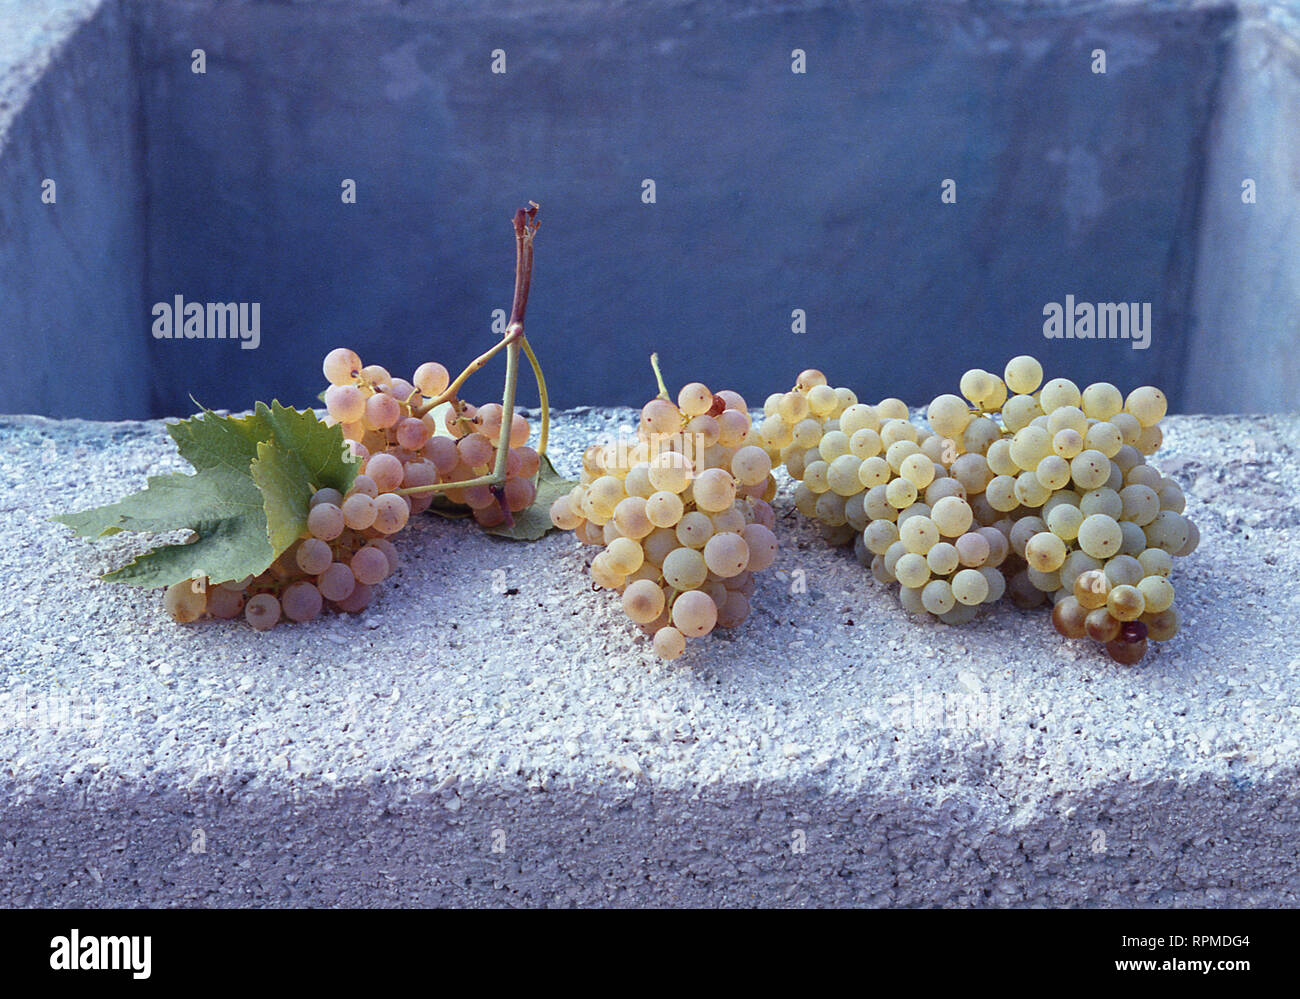 Trebbiano grapes on edge of concrete well in Southern Italy - Stock Image